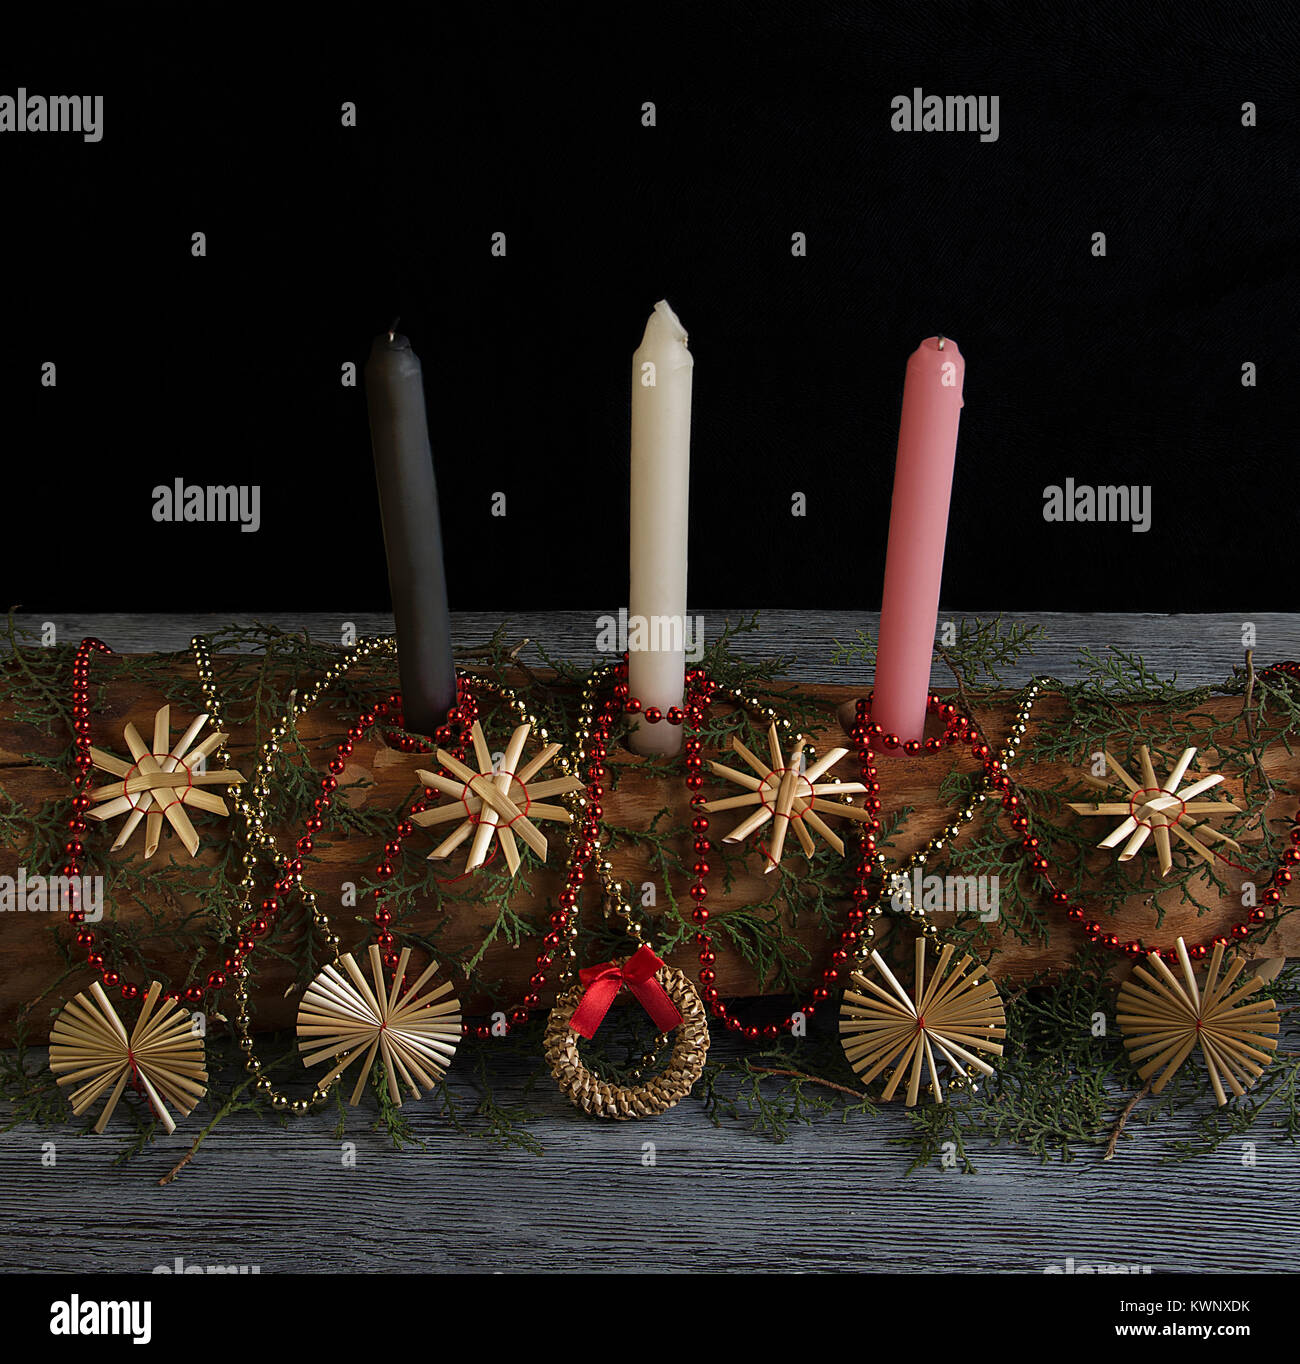 Yule celebration - Stock Image